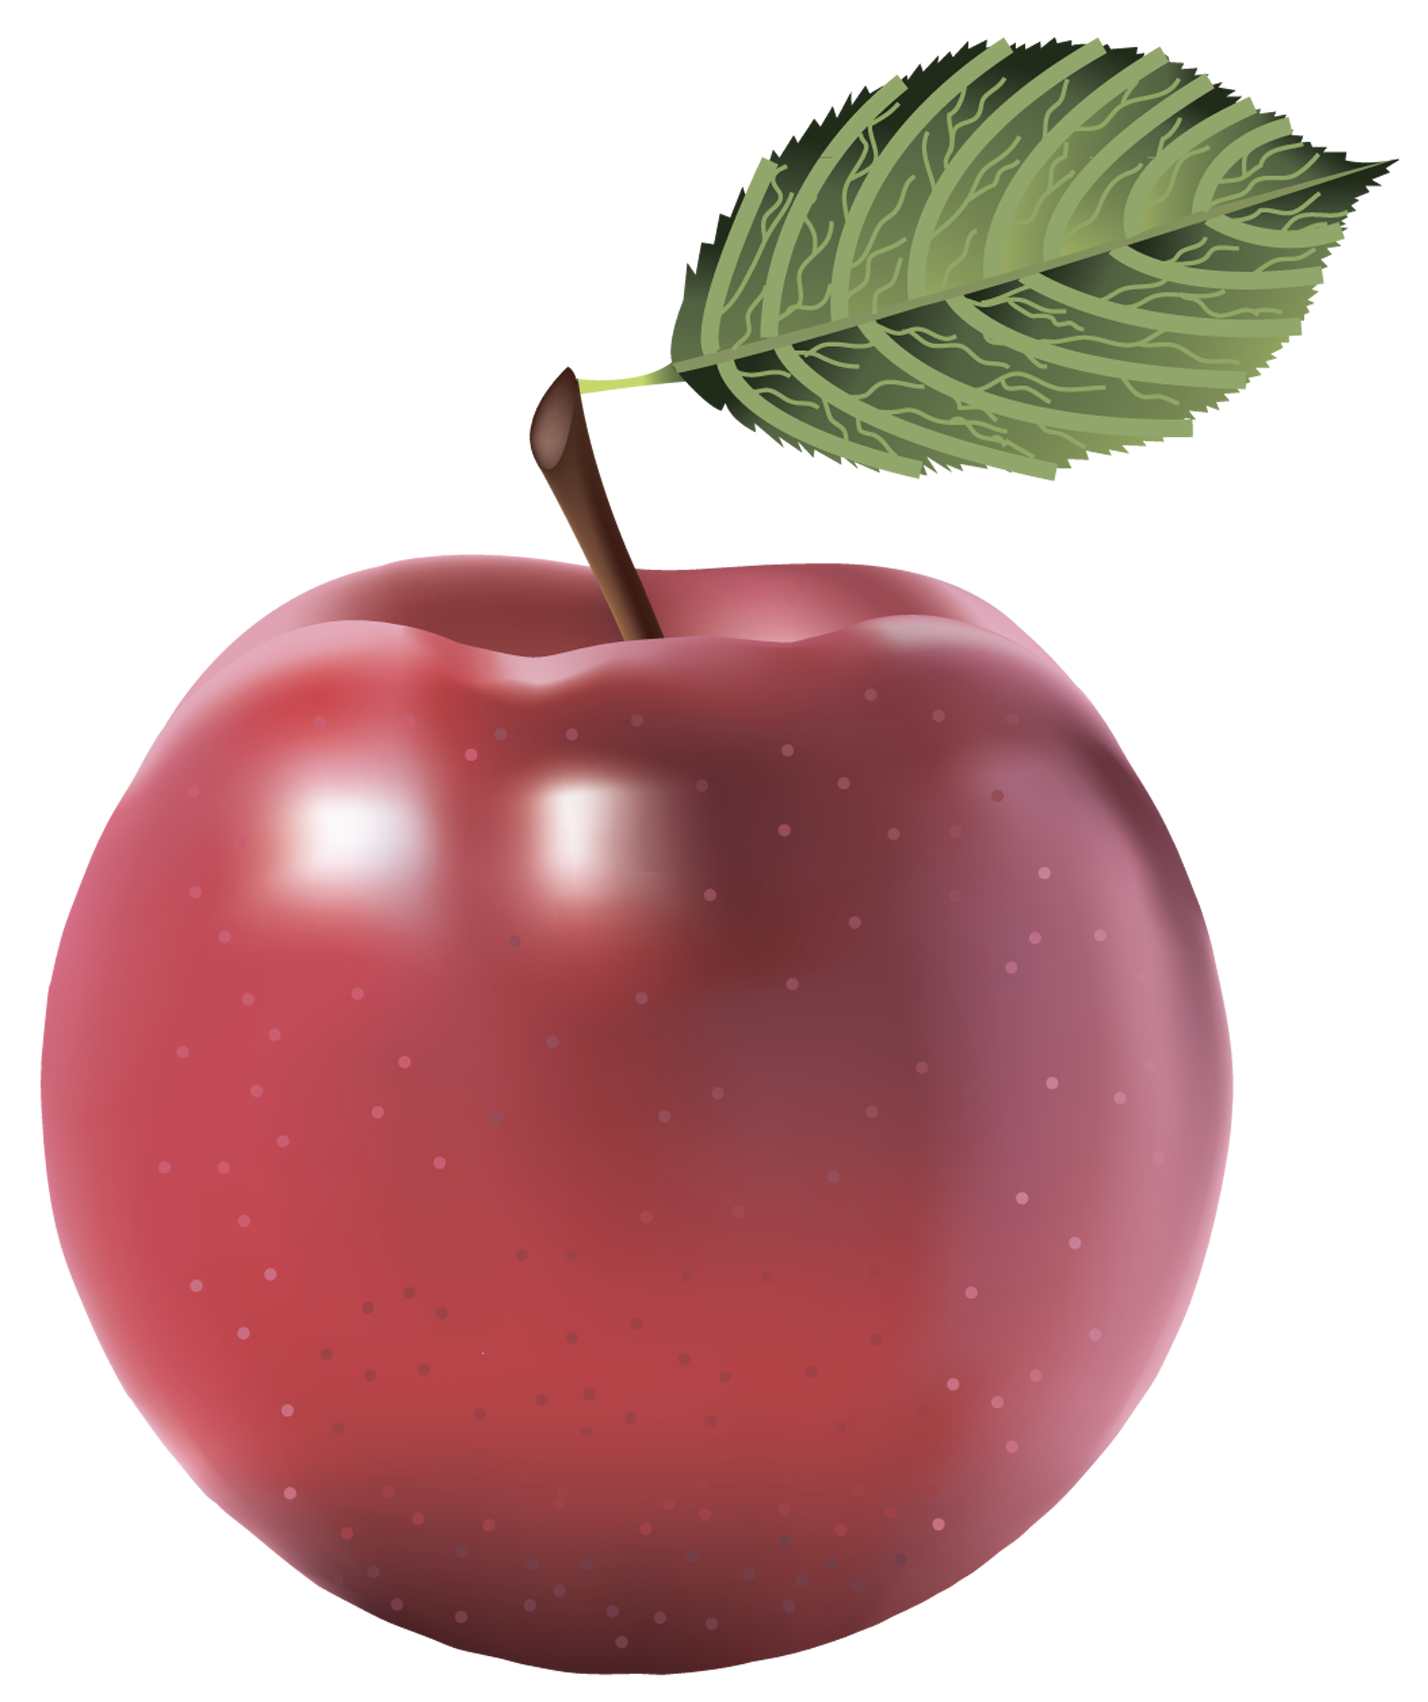 Apple S Png Image Apple Red Apple Yellow Apple